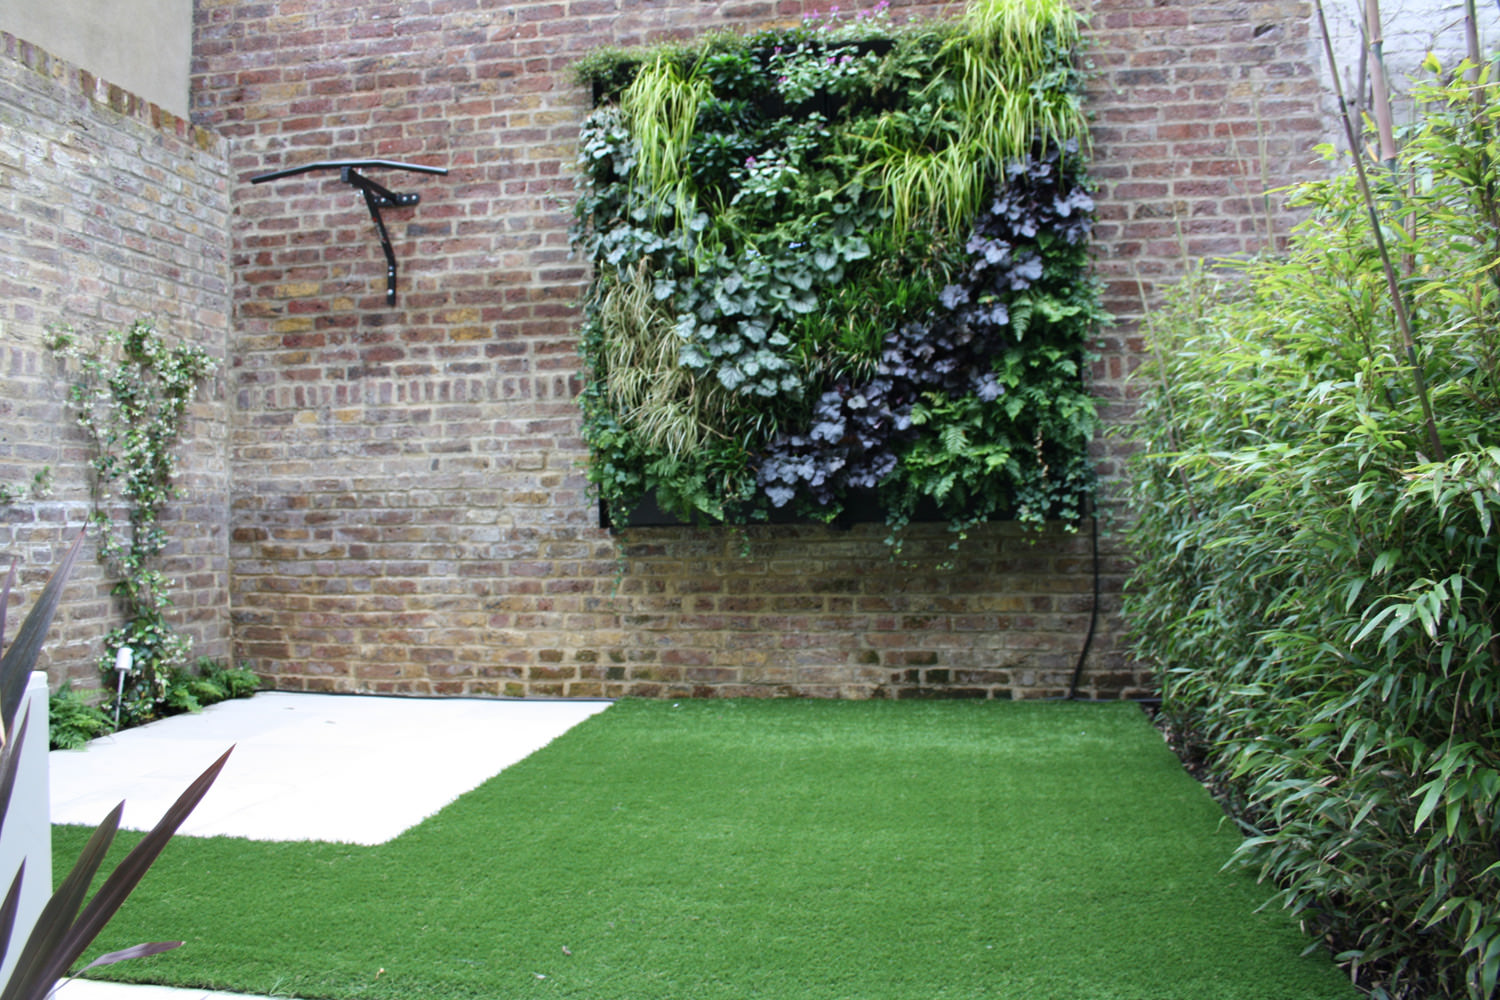 Top 10 london garden designs garden club london for Tiny garden design